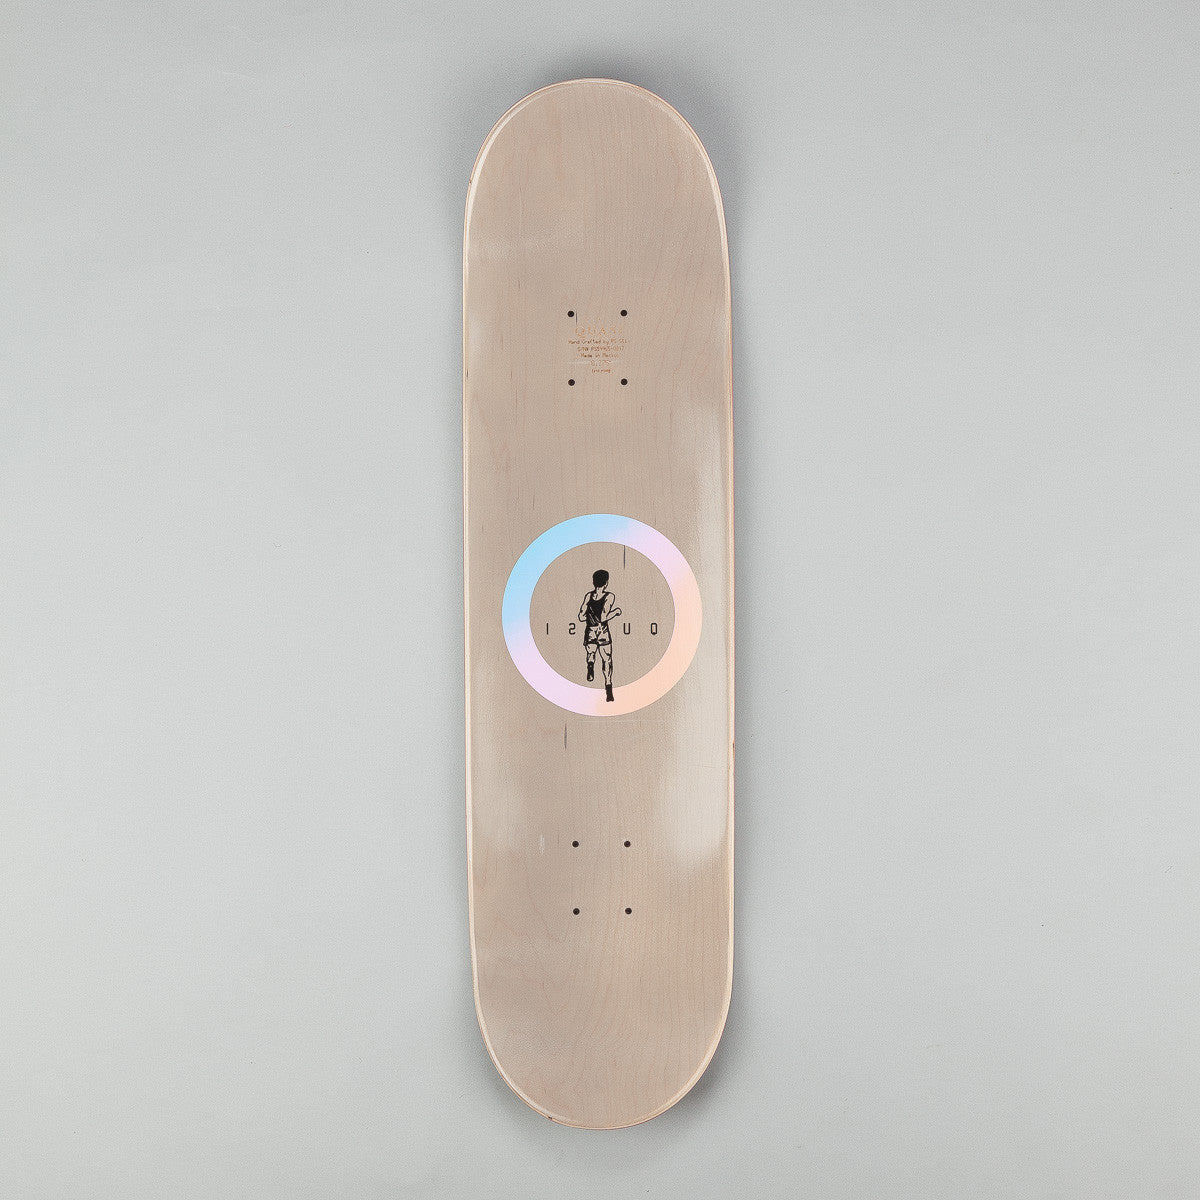 Quasi Skateboards Run [Two] Deck - Greywash 8.375""